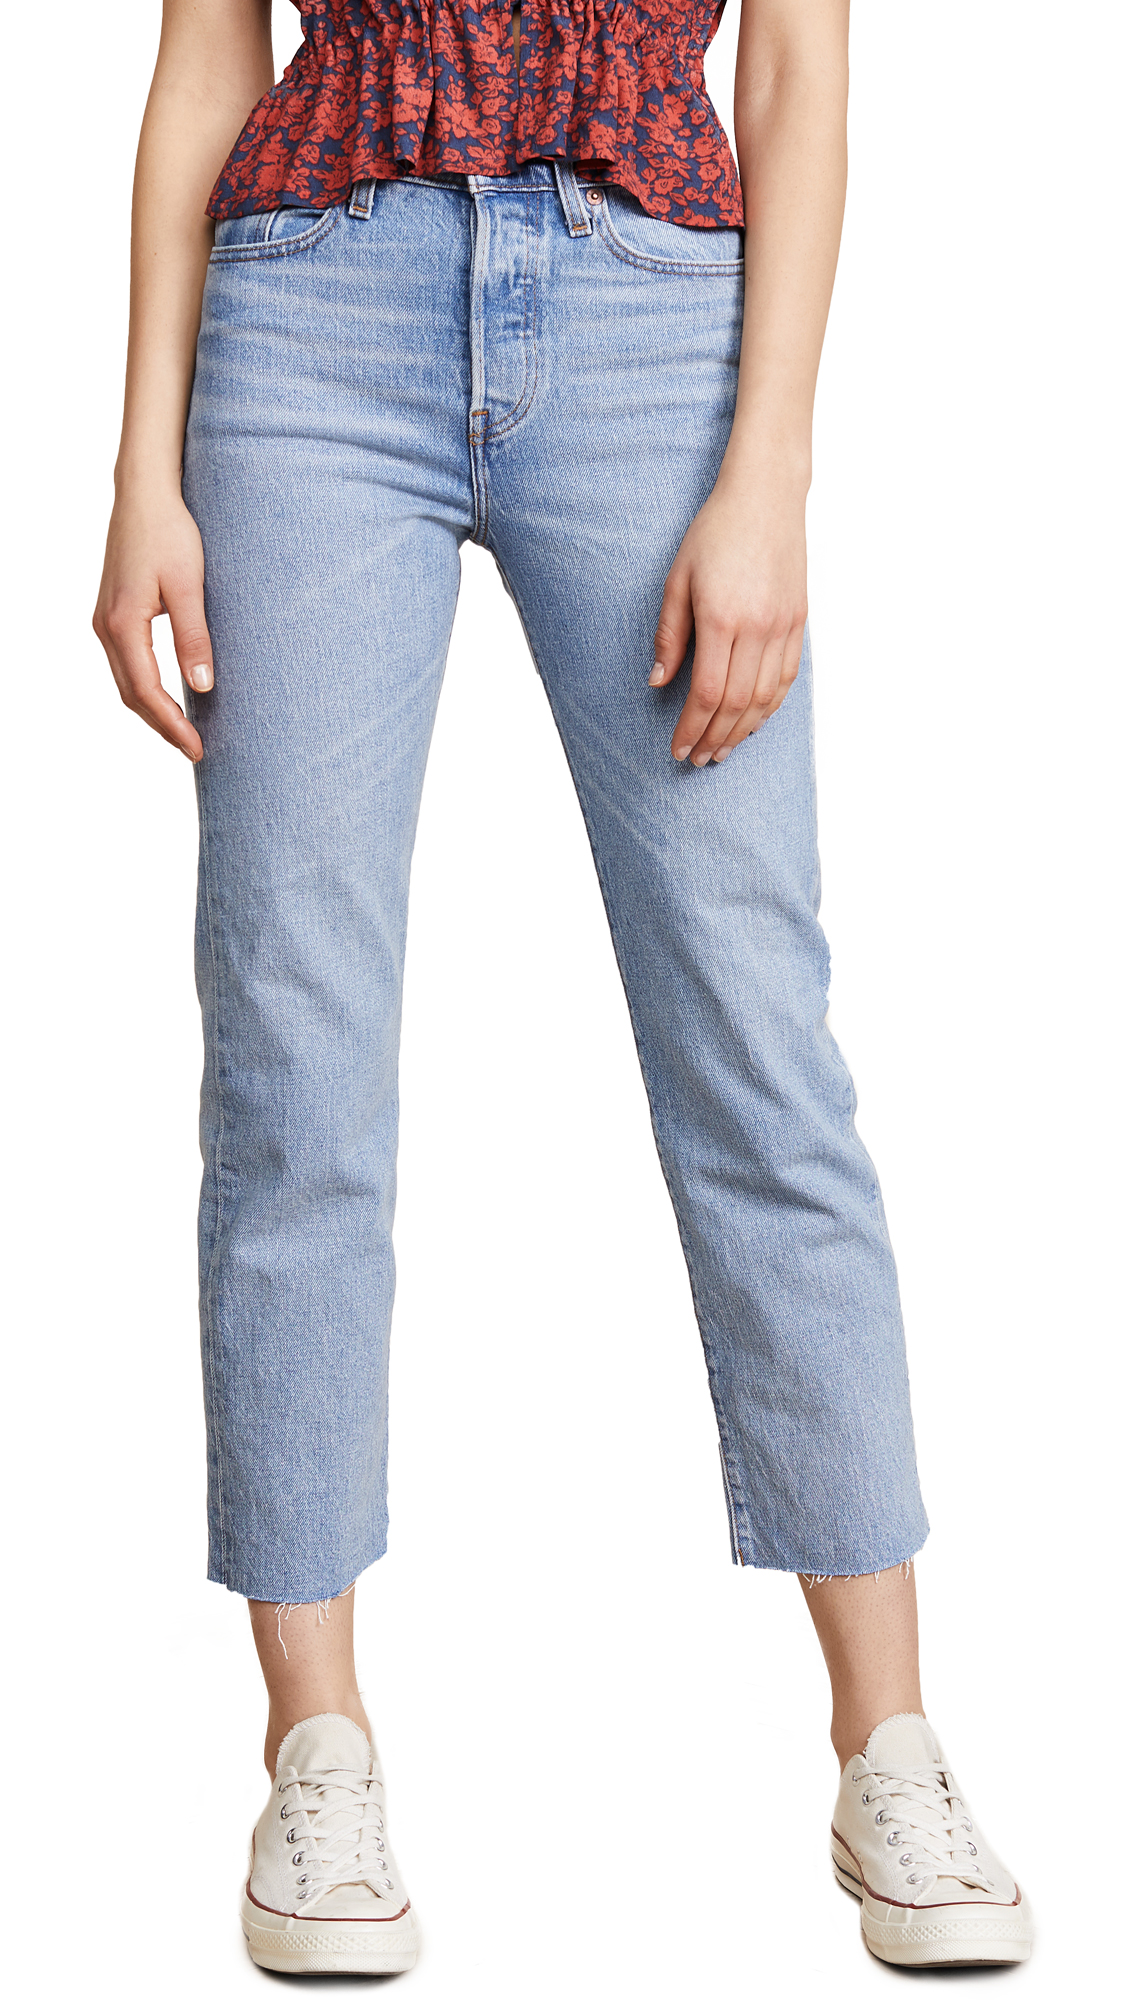 Levis Wedgie Straight Jeans - Clouded Consciousness